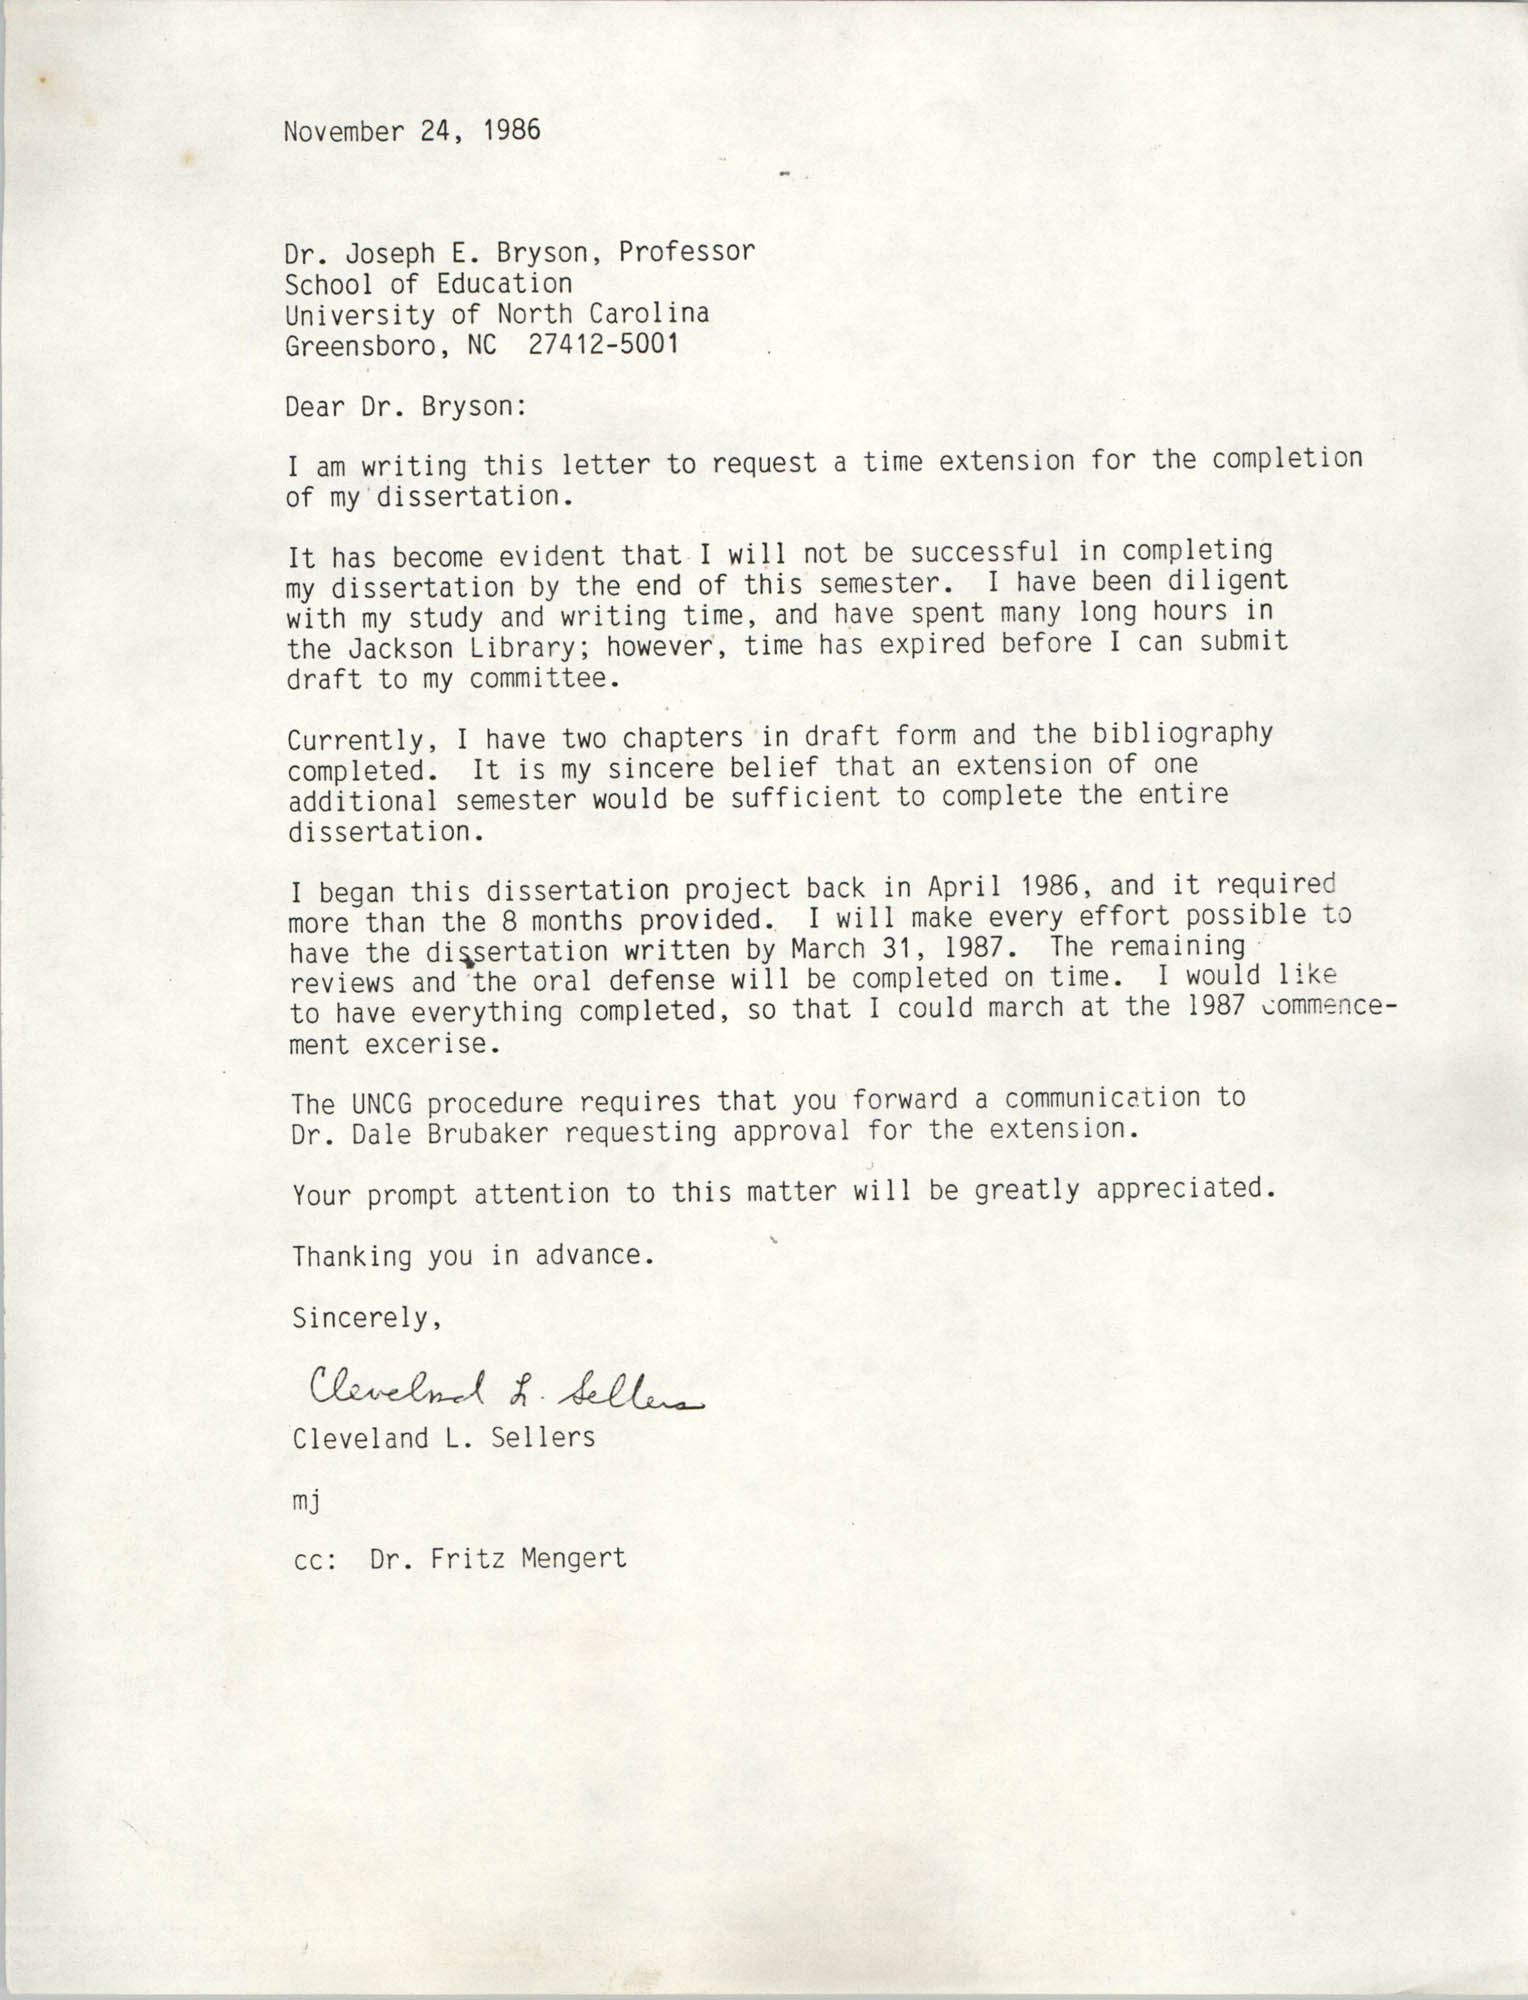 Letter from Cleveland Sellers to Joseph E. Bryson, November 24, 1986